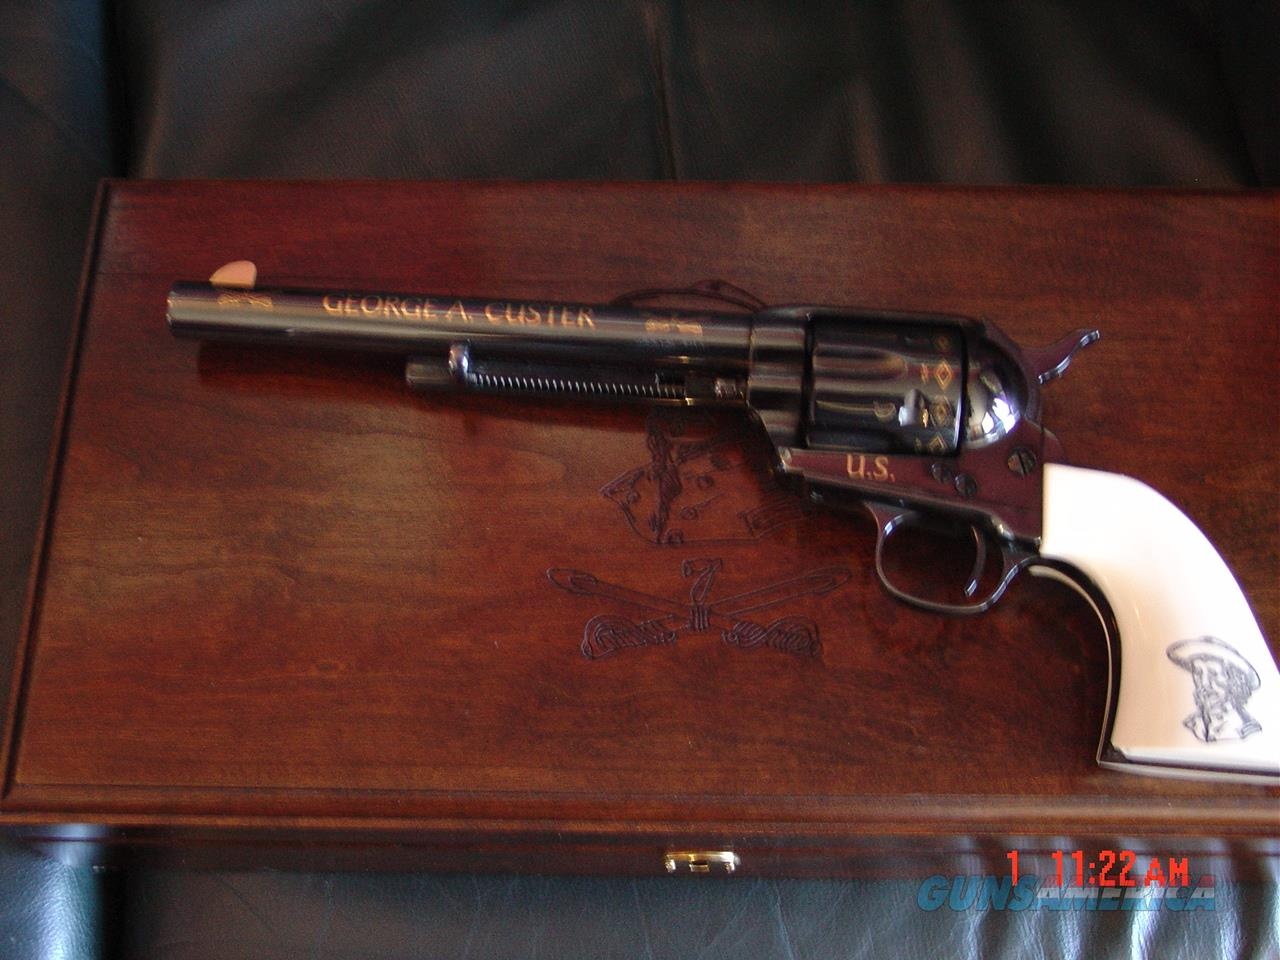 "Uberti SAA 7 1/2"" 45 Colt, George Custer 7th Cavalry tribute,gold engraved,#148 of 500,fitted case,belt buckle,never fired, awesome showpiece  Guns > Pistols > Collectible Revolvers"